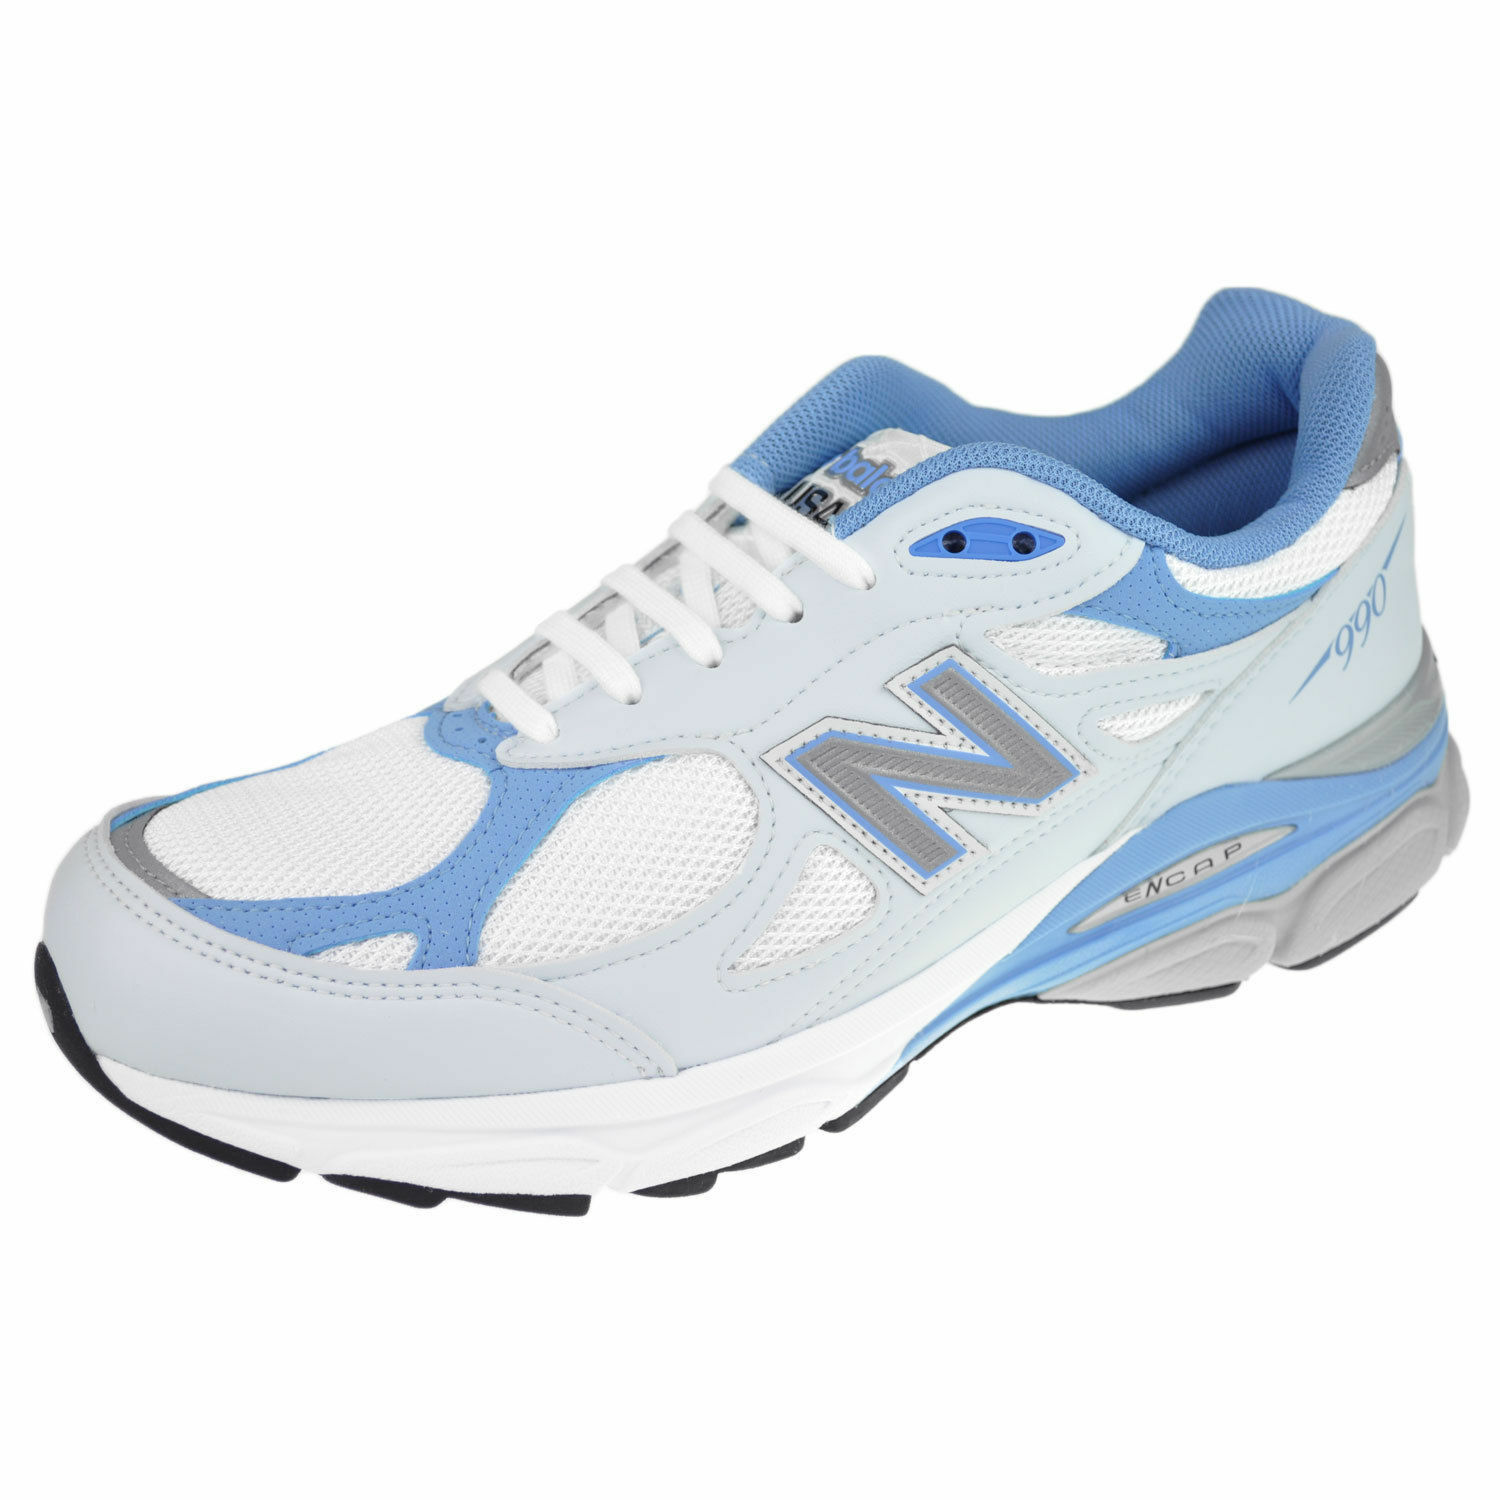 New Balance 990 W990WB3 Women's Running Sneakers 6.5 (New)